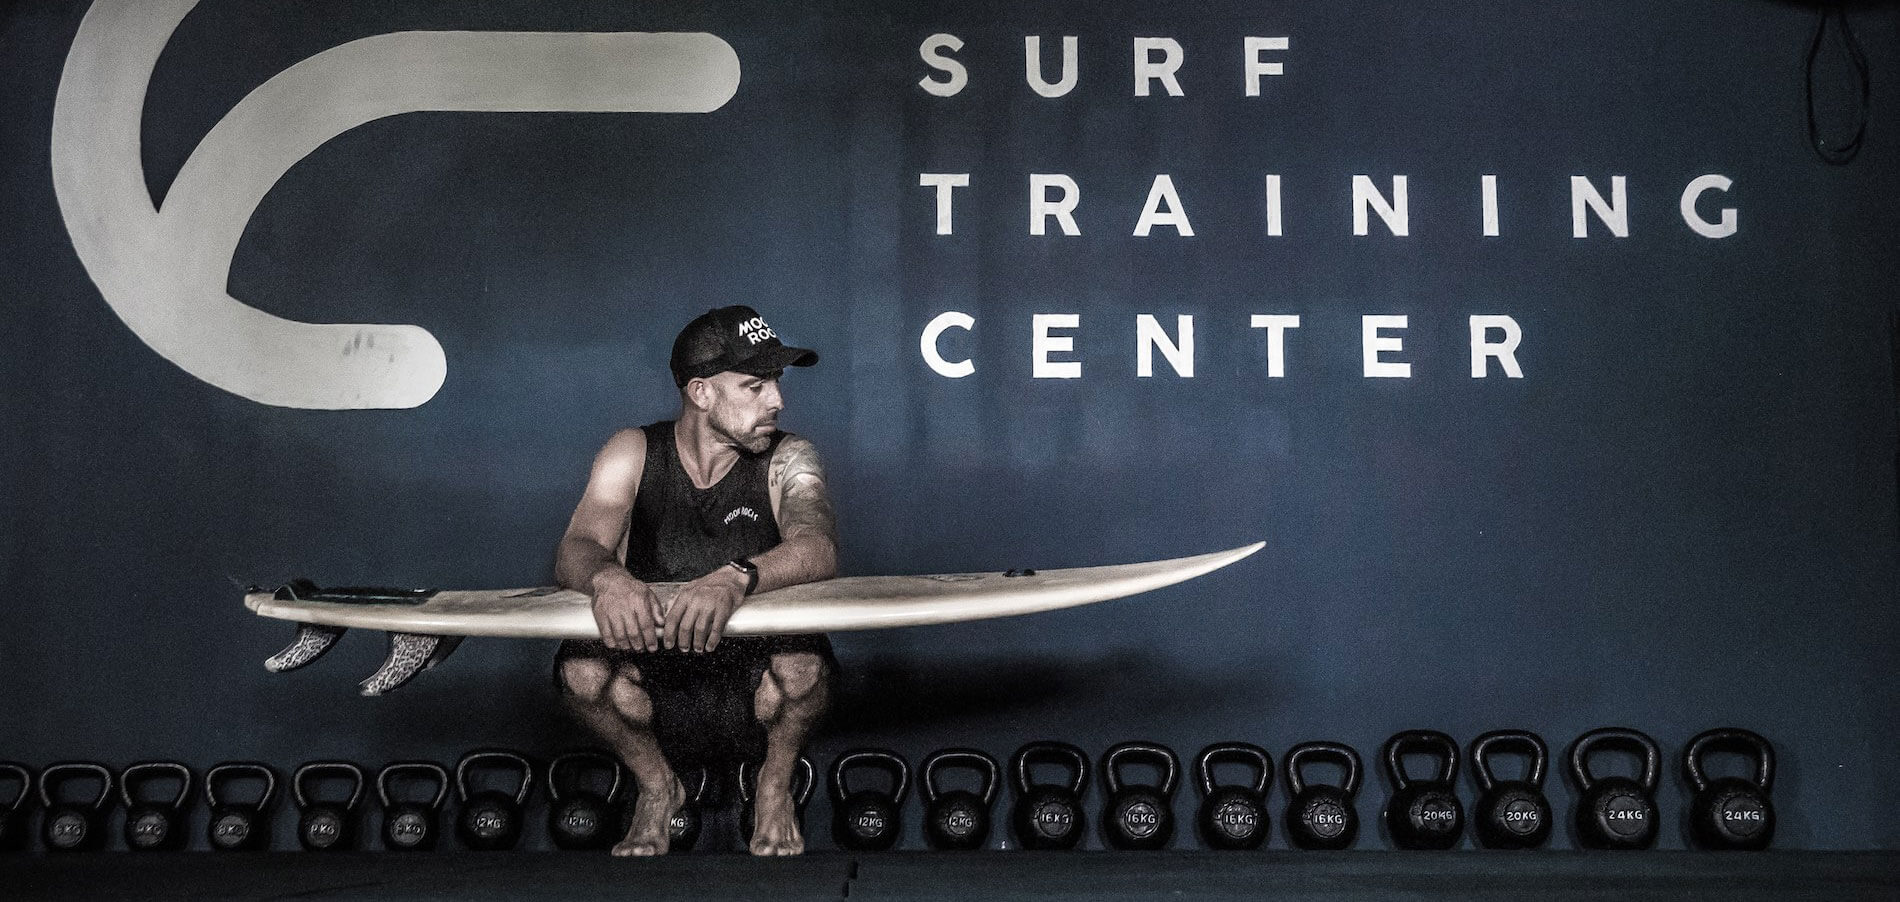 Surfcamp Fetch Surf Concept Training Center in Canggu, Bali, Indonesia